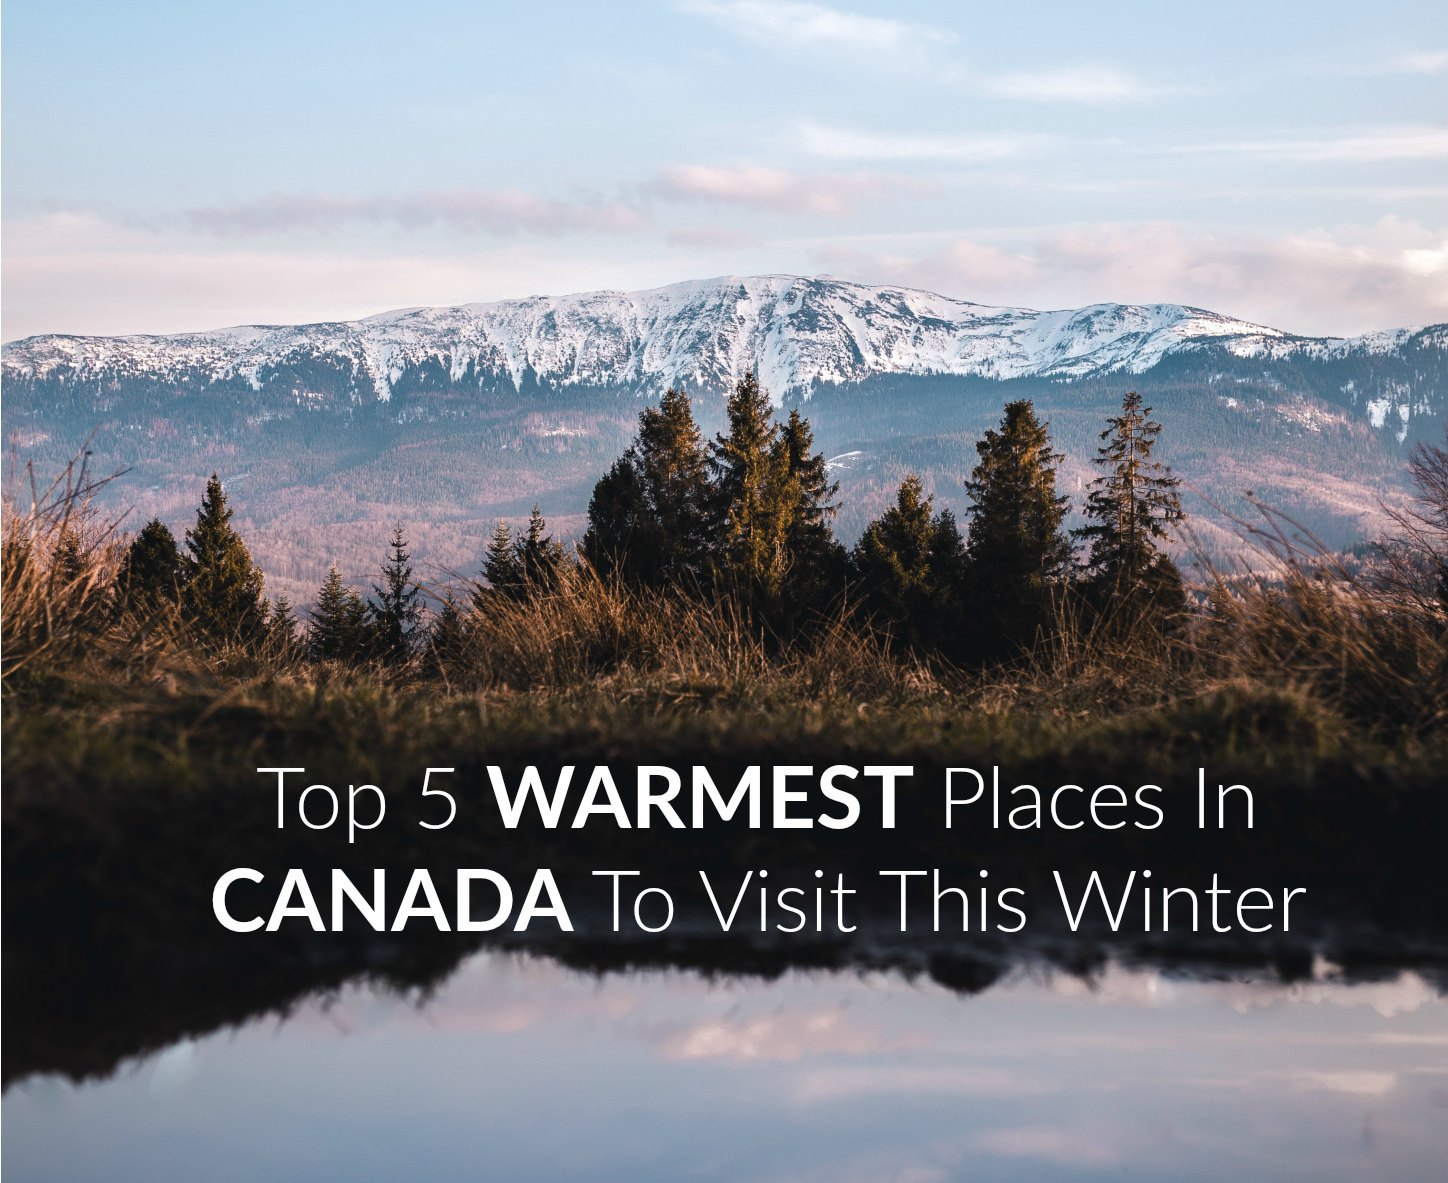 Top 5 WARMEST Places In Canada to Visit This Winter